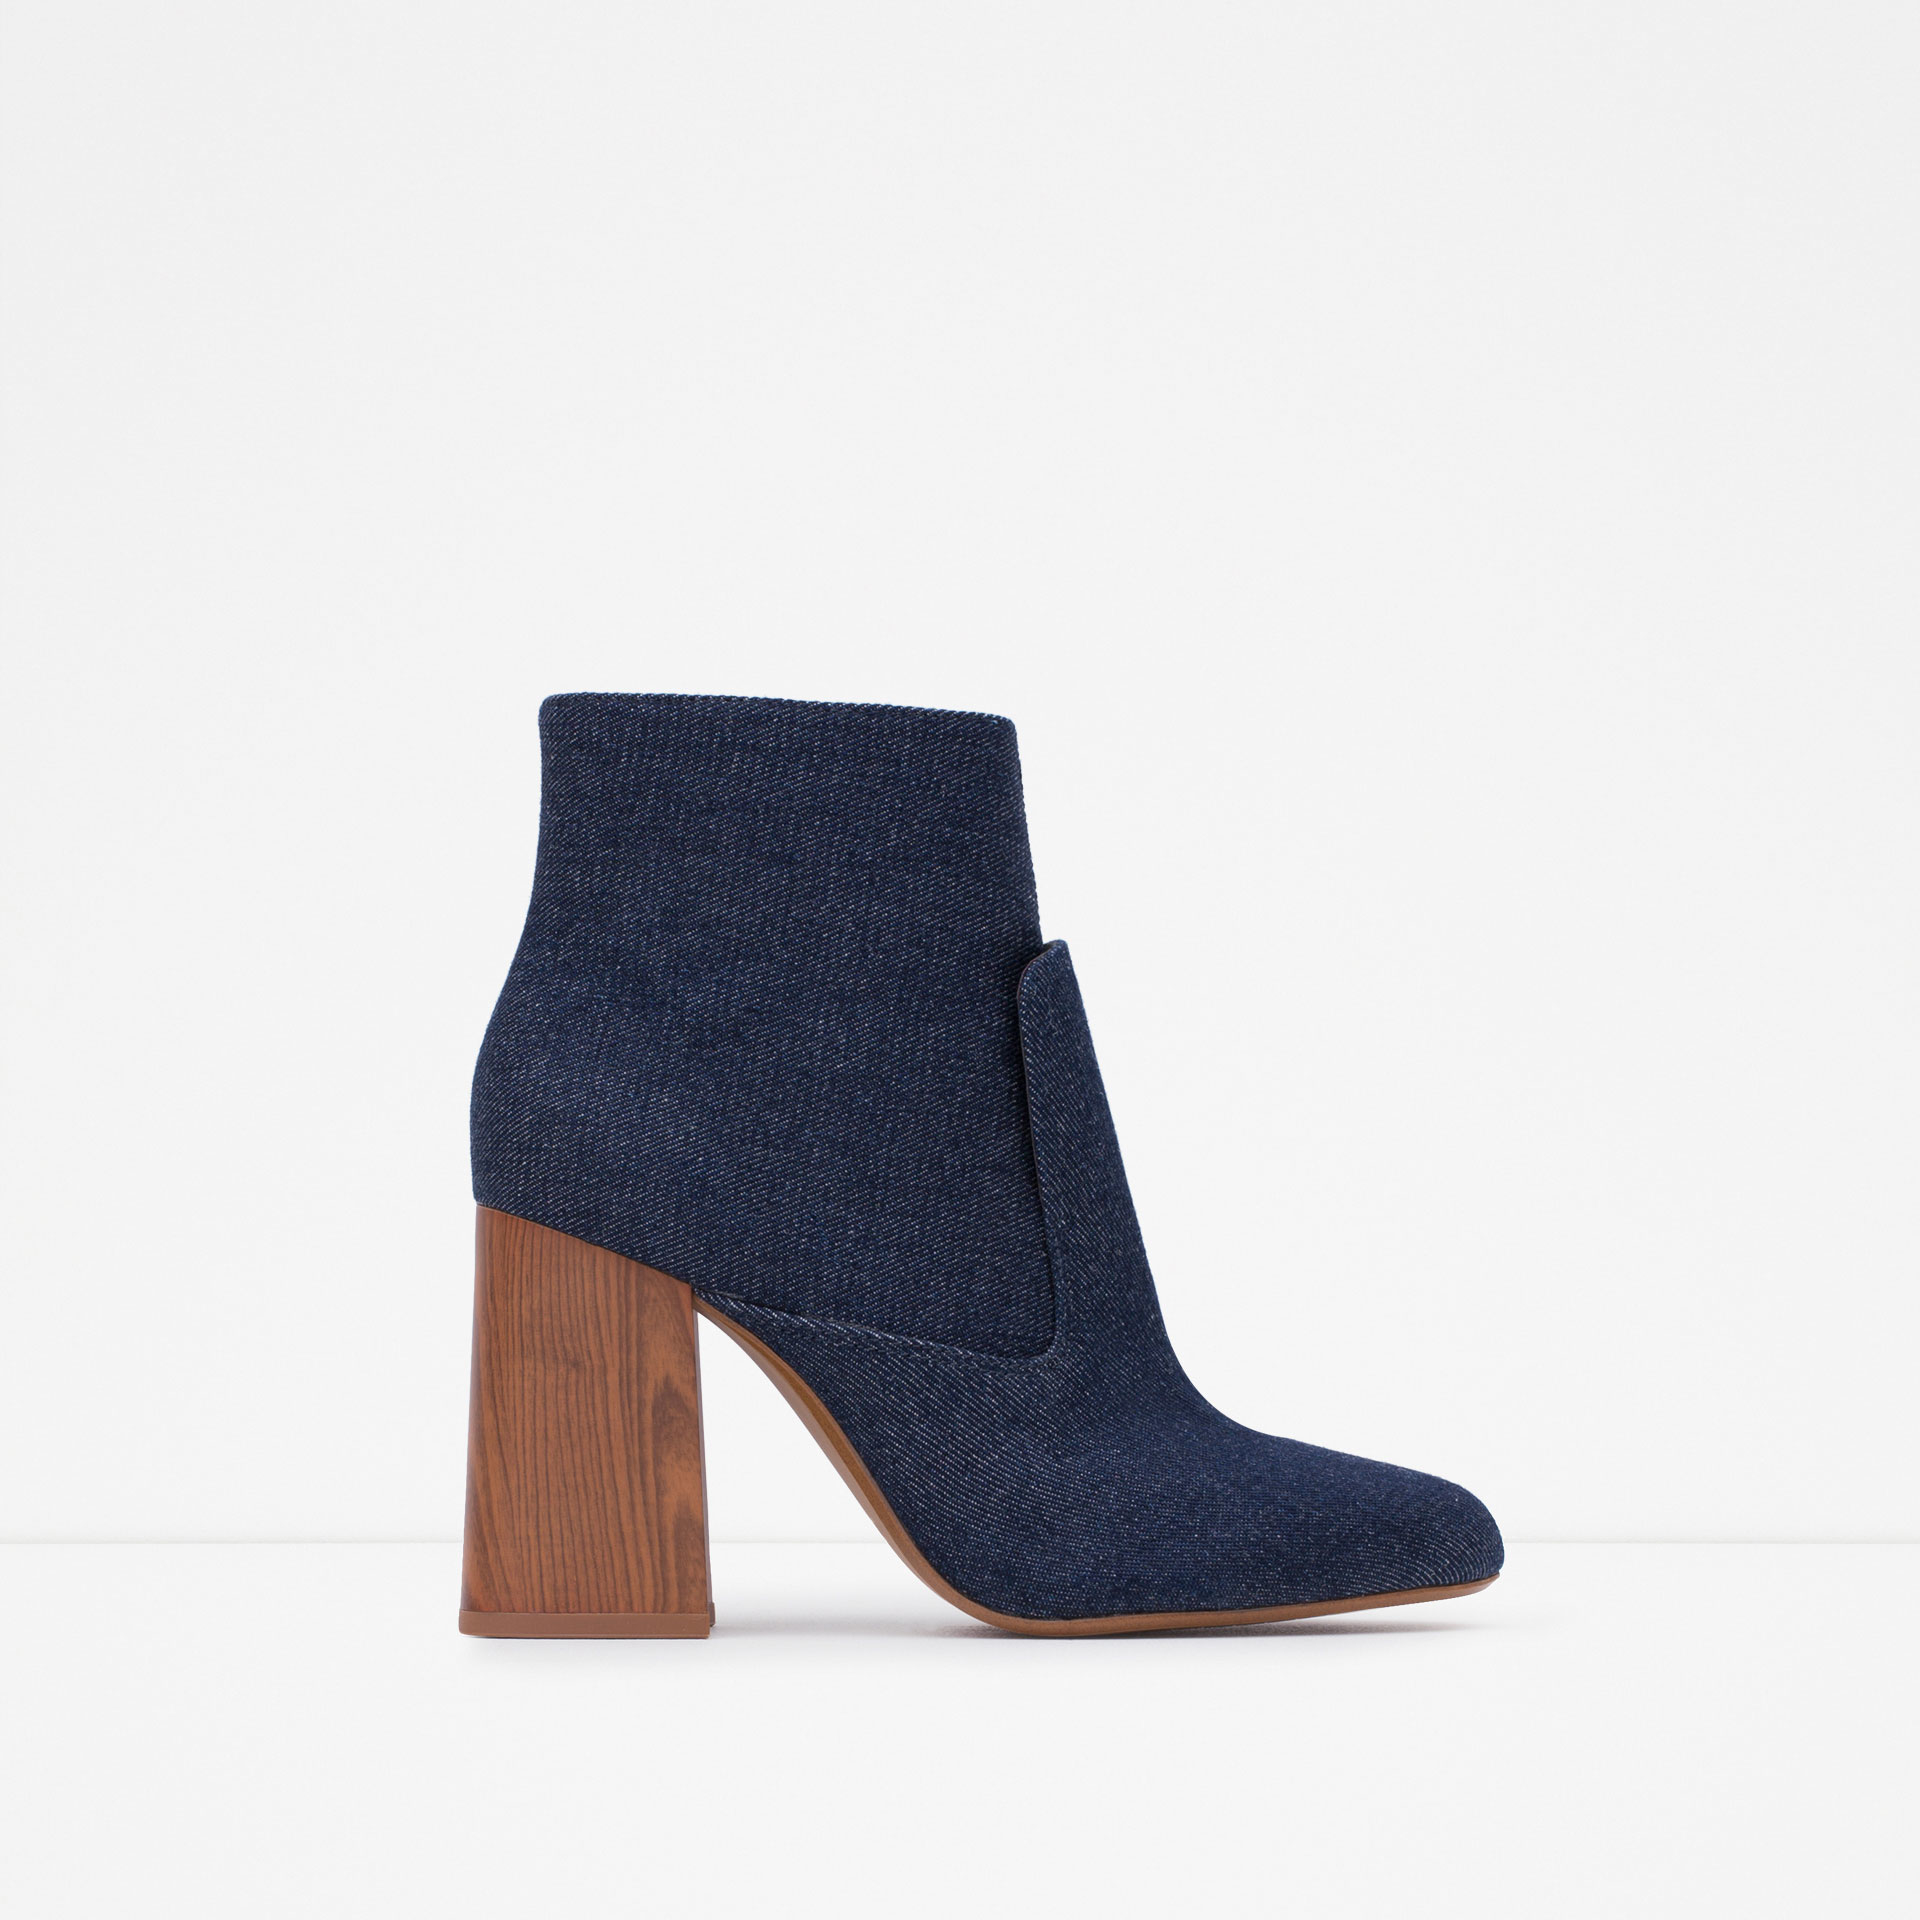 Original 27 Simple High Heels Ankle Boots Women With Jeans | Sobatapk.com